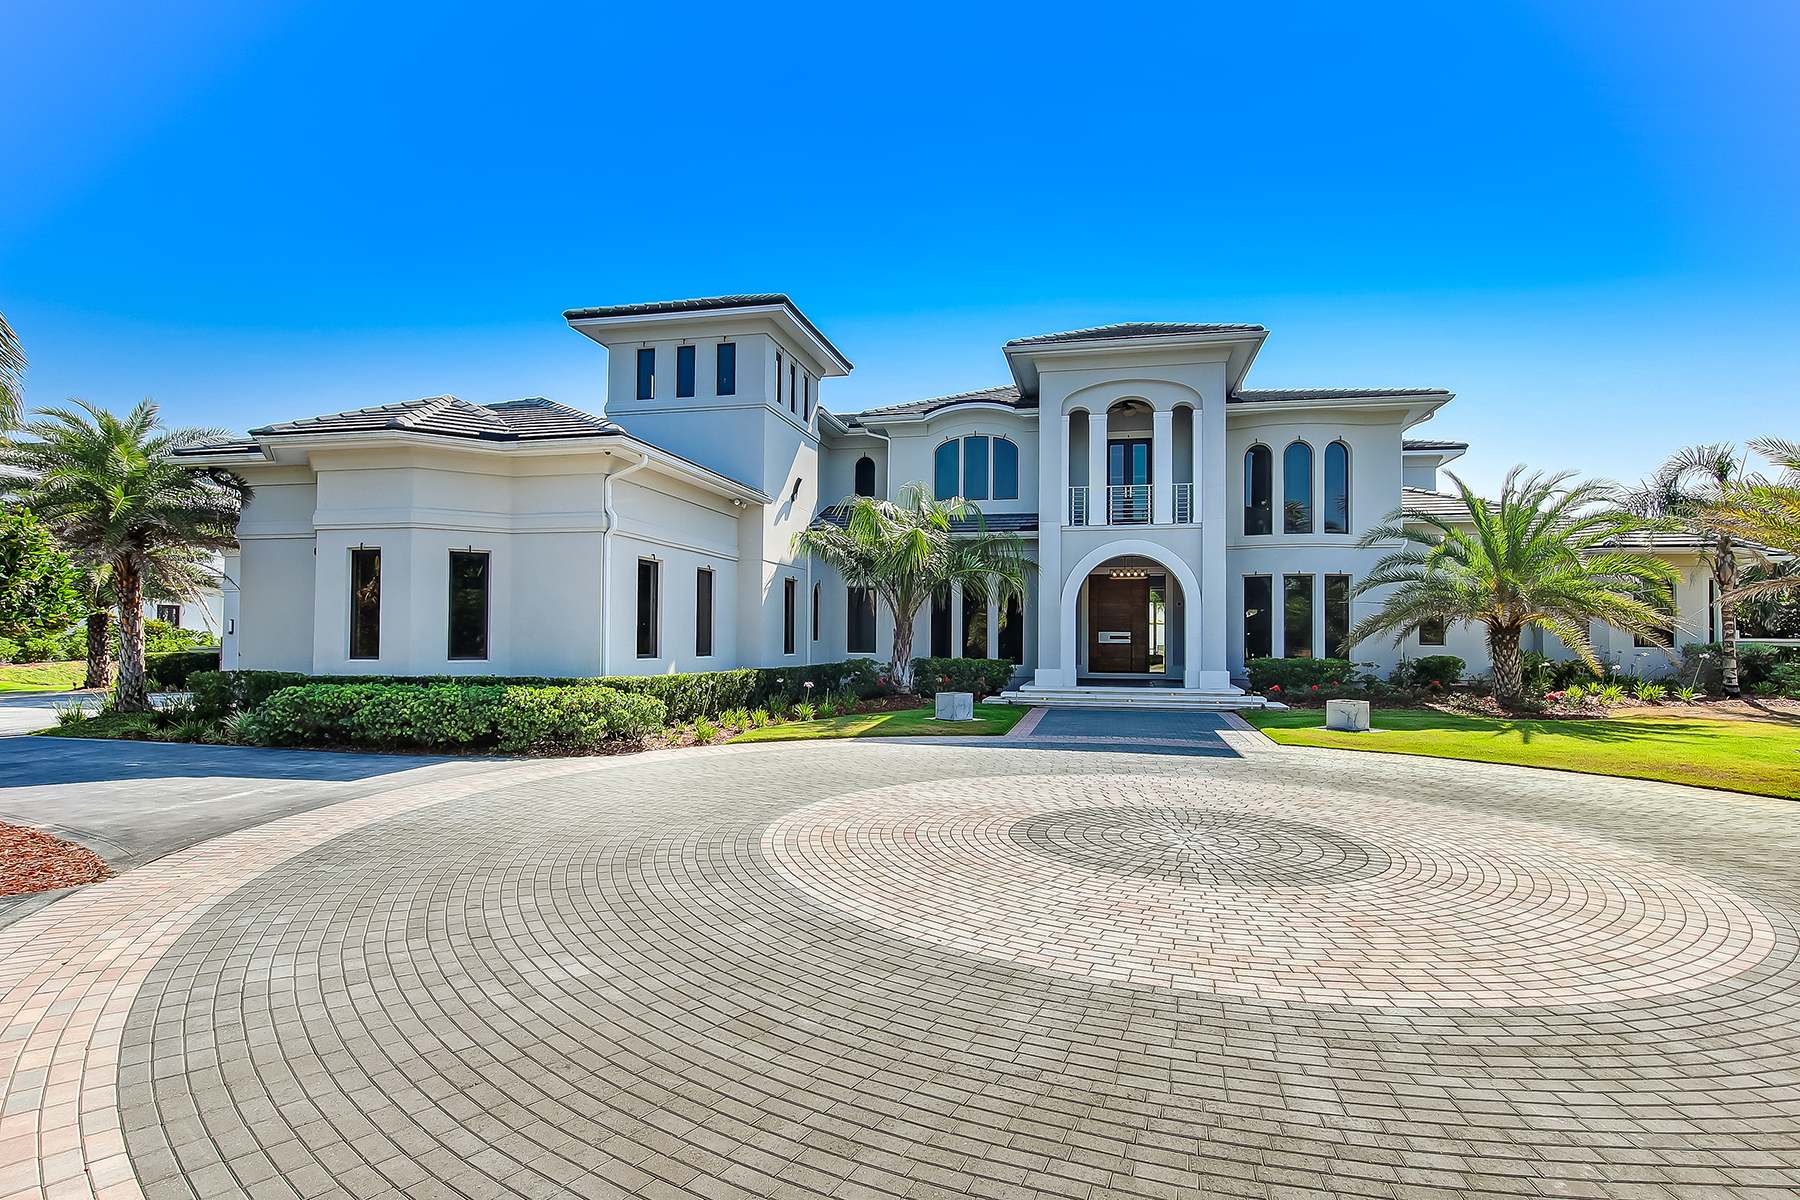 Single Family Homes for Sale at 1217 Ponte Vedra Blvd Ponte Vedra Beach, Florida 32082 United States